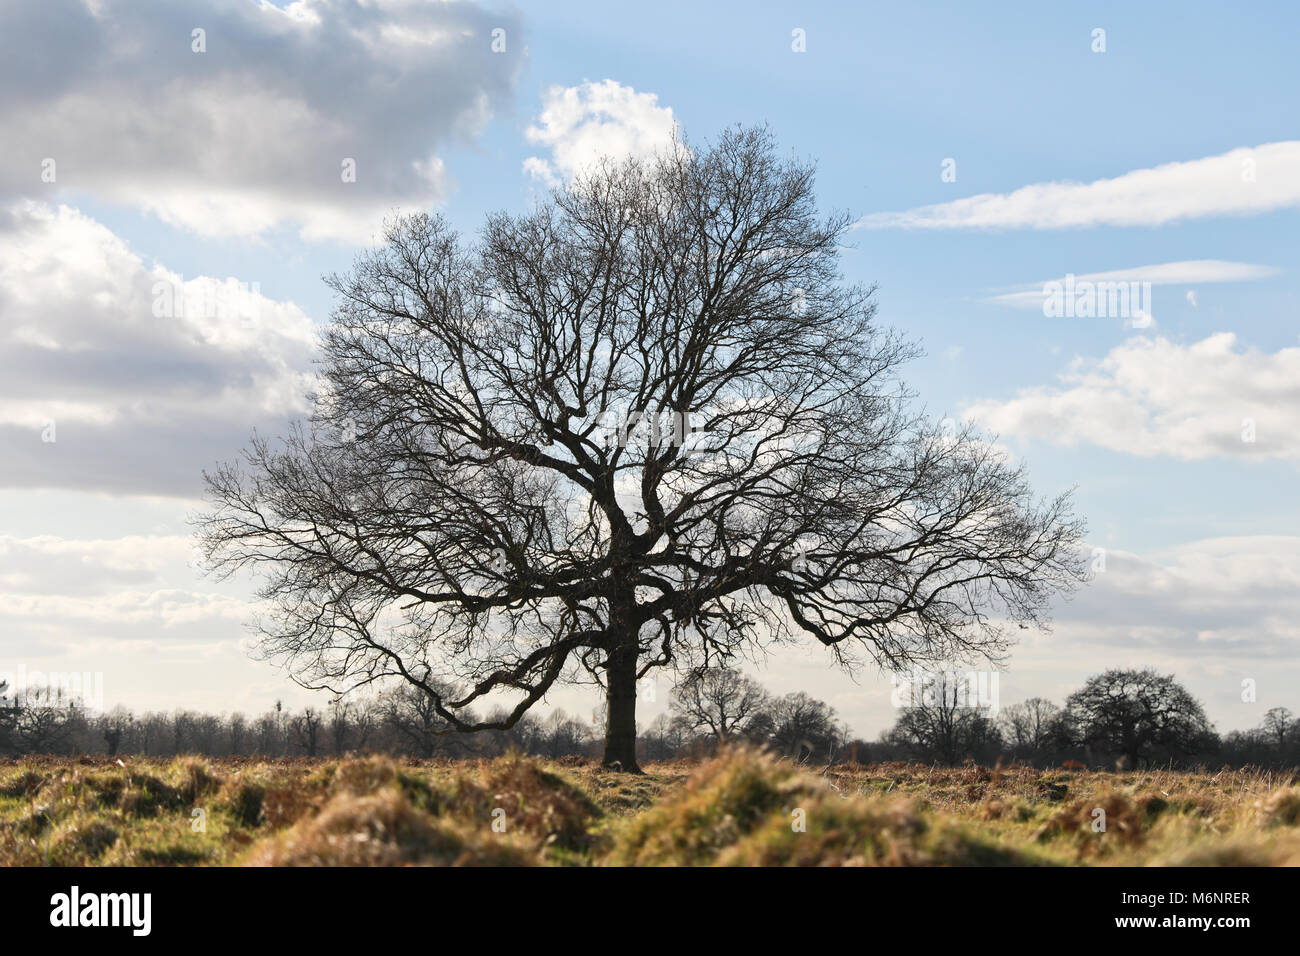 Solo, mighty tree in the middle of the field, above all others. - Stock Image